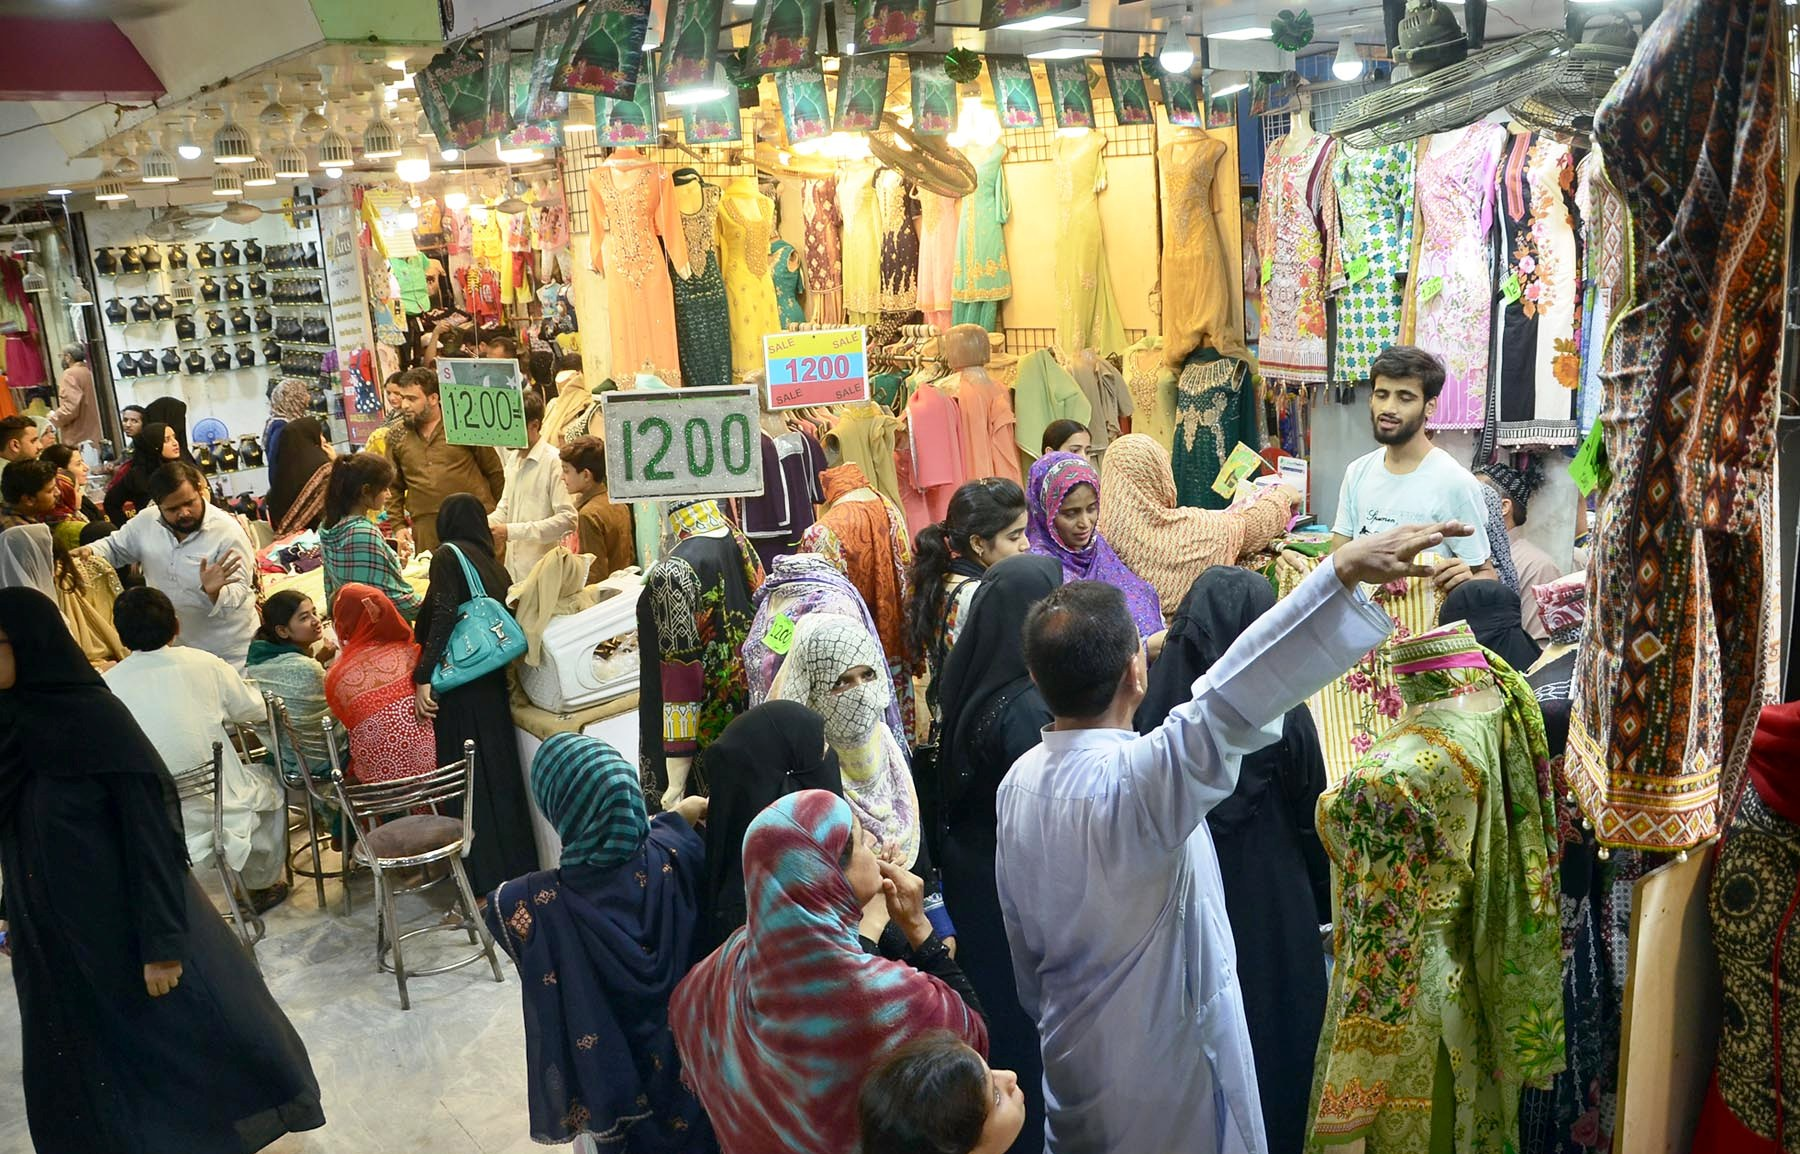 In Pictures: Zealous crowd in full swing for Eid preparations